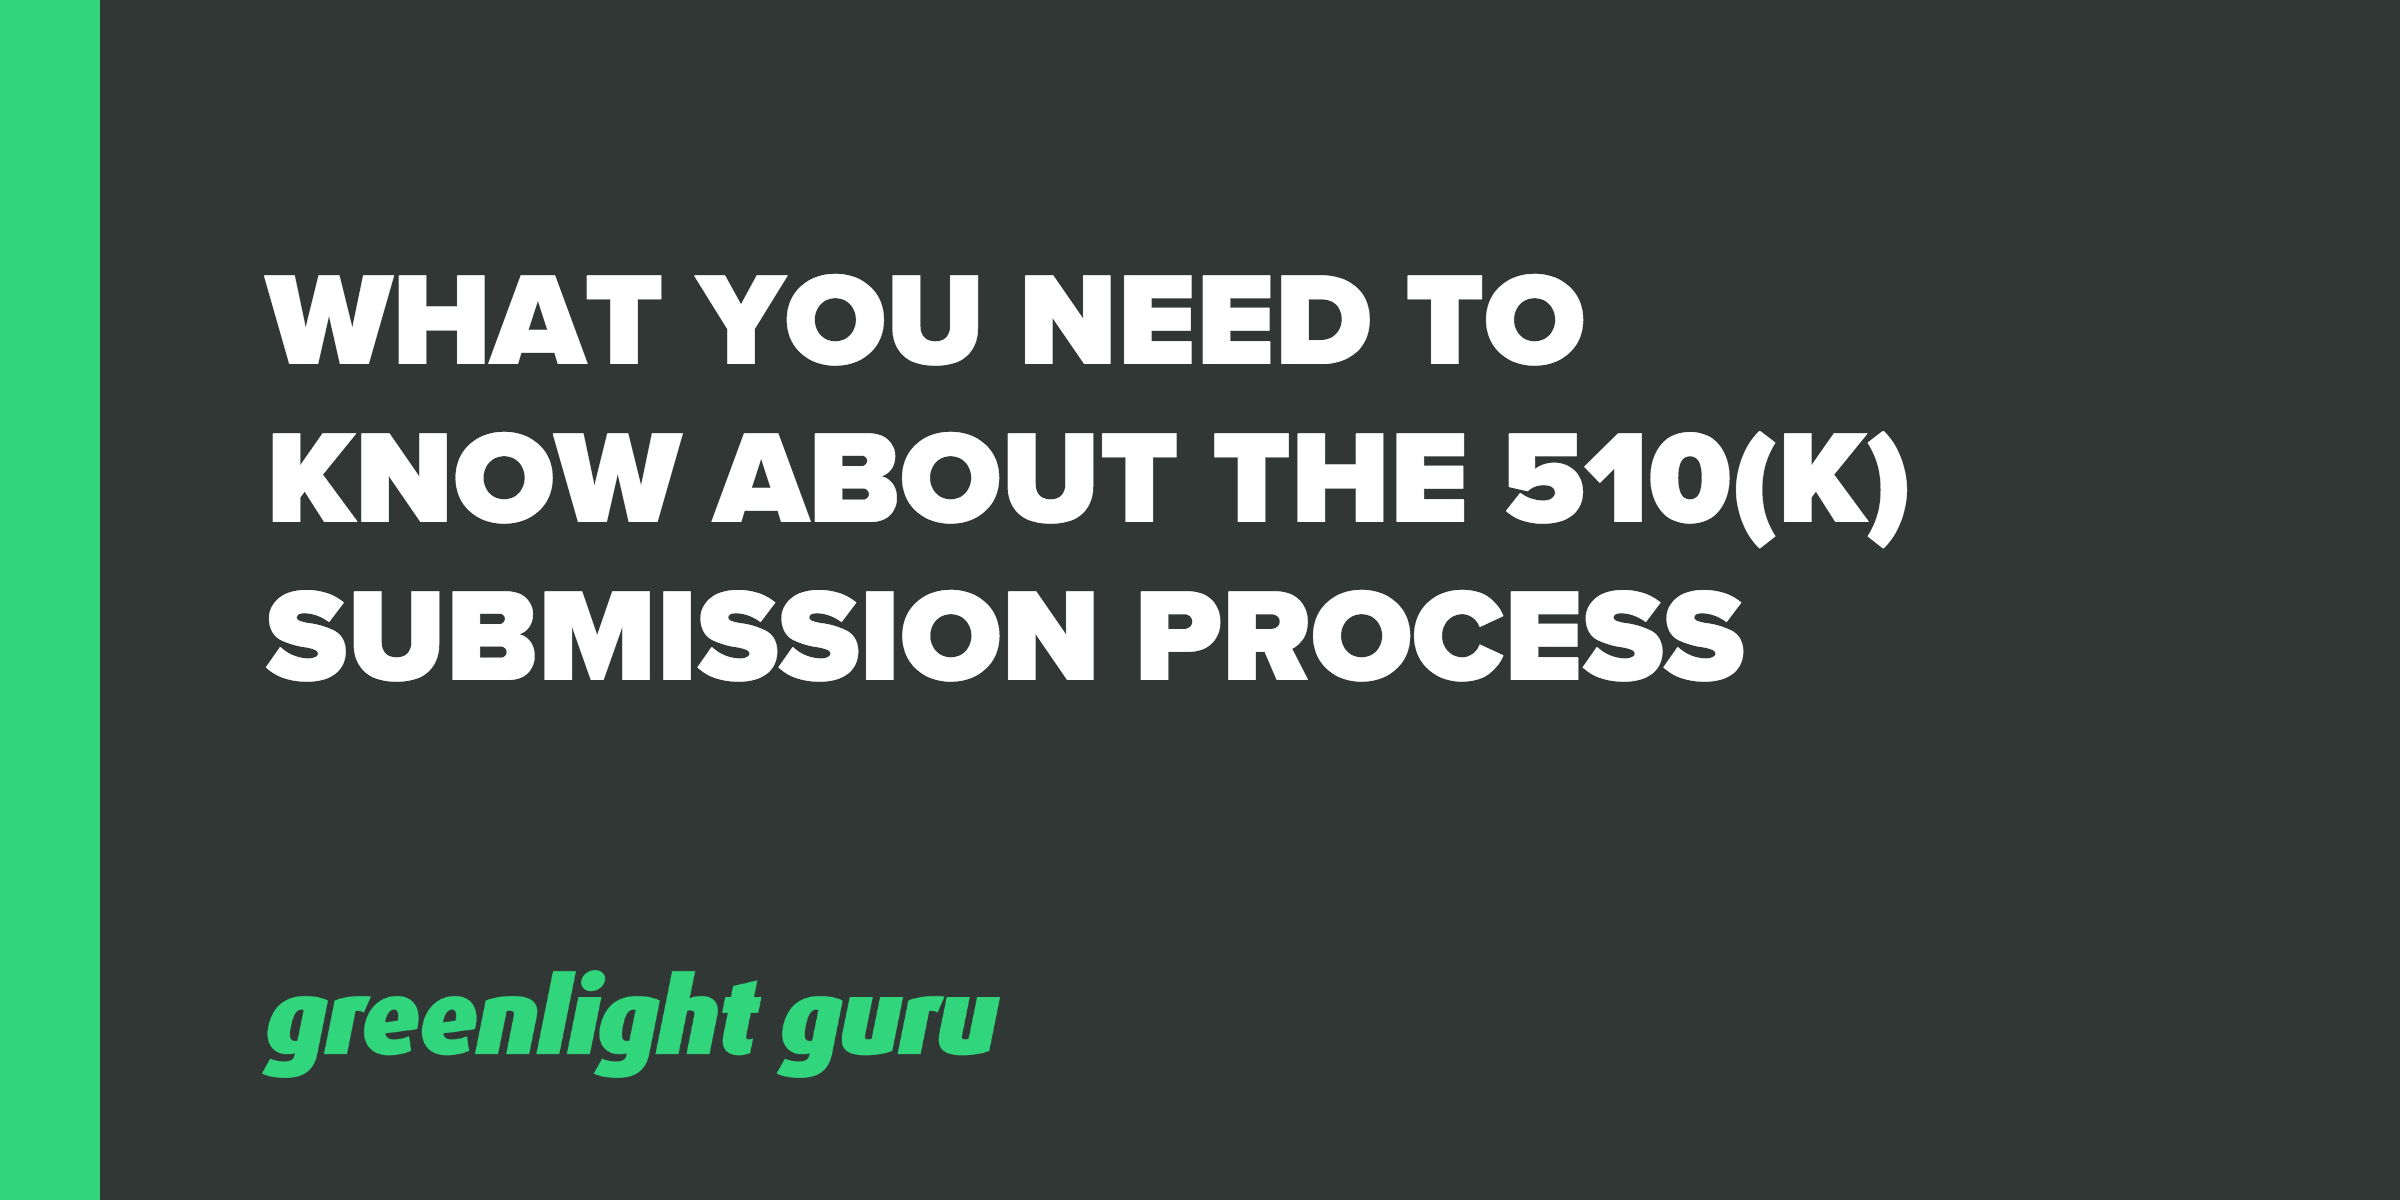 510k submission process